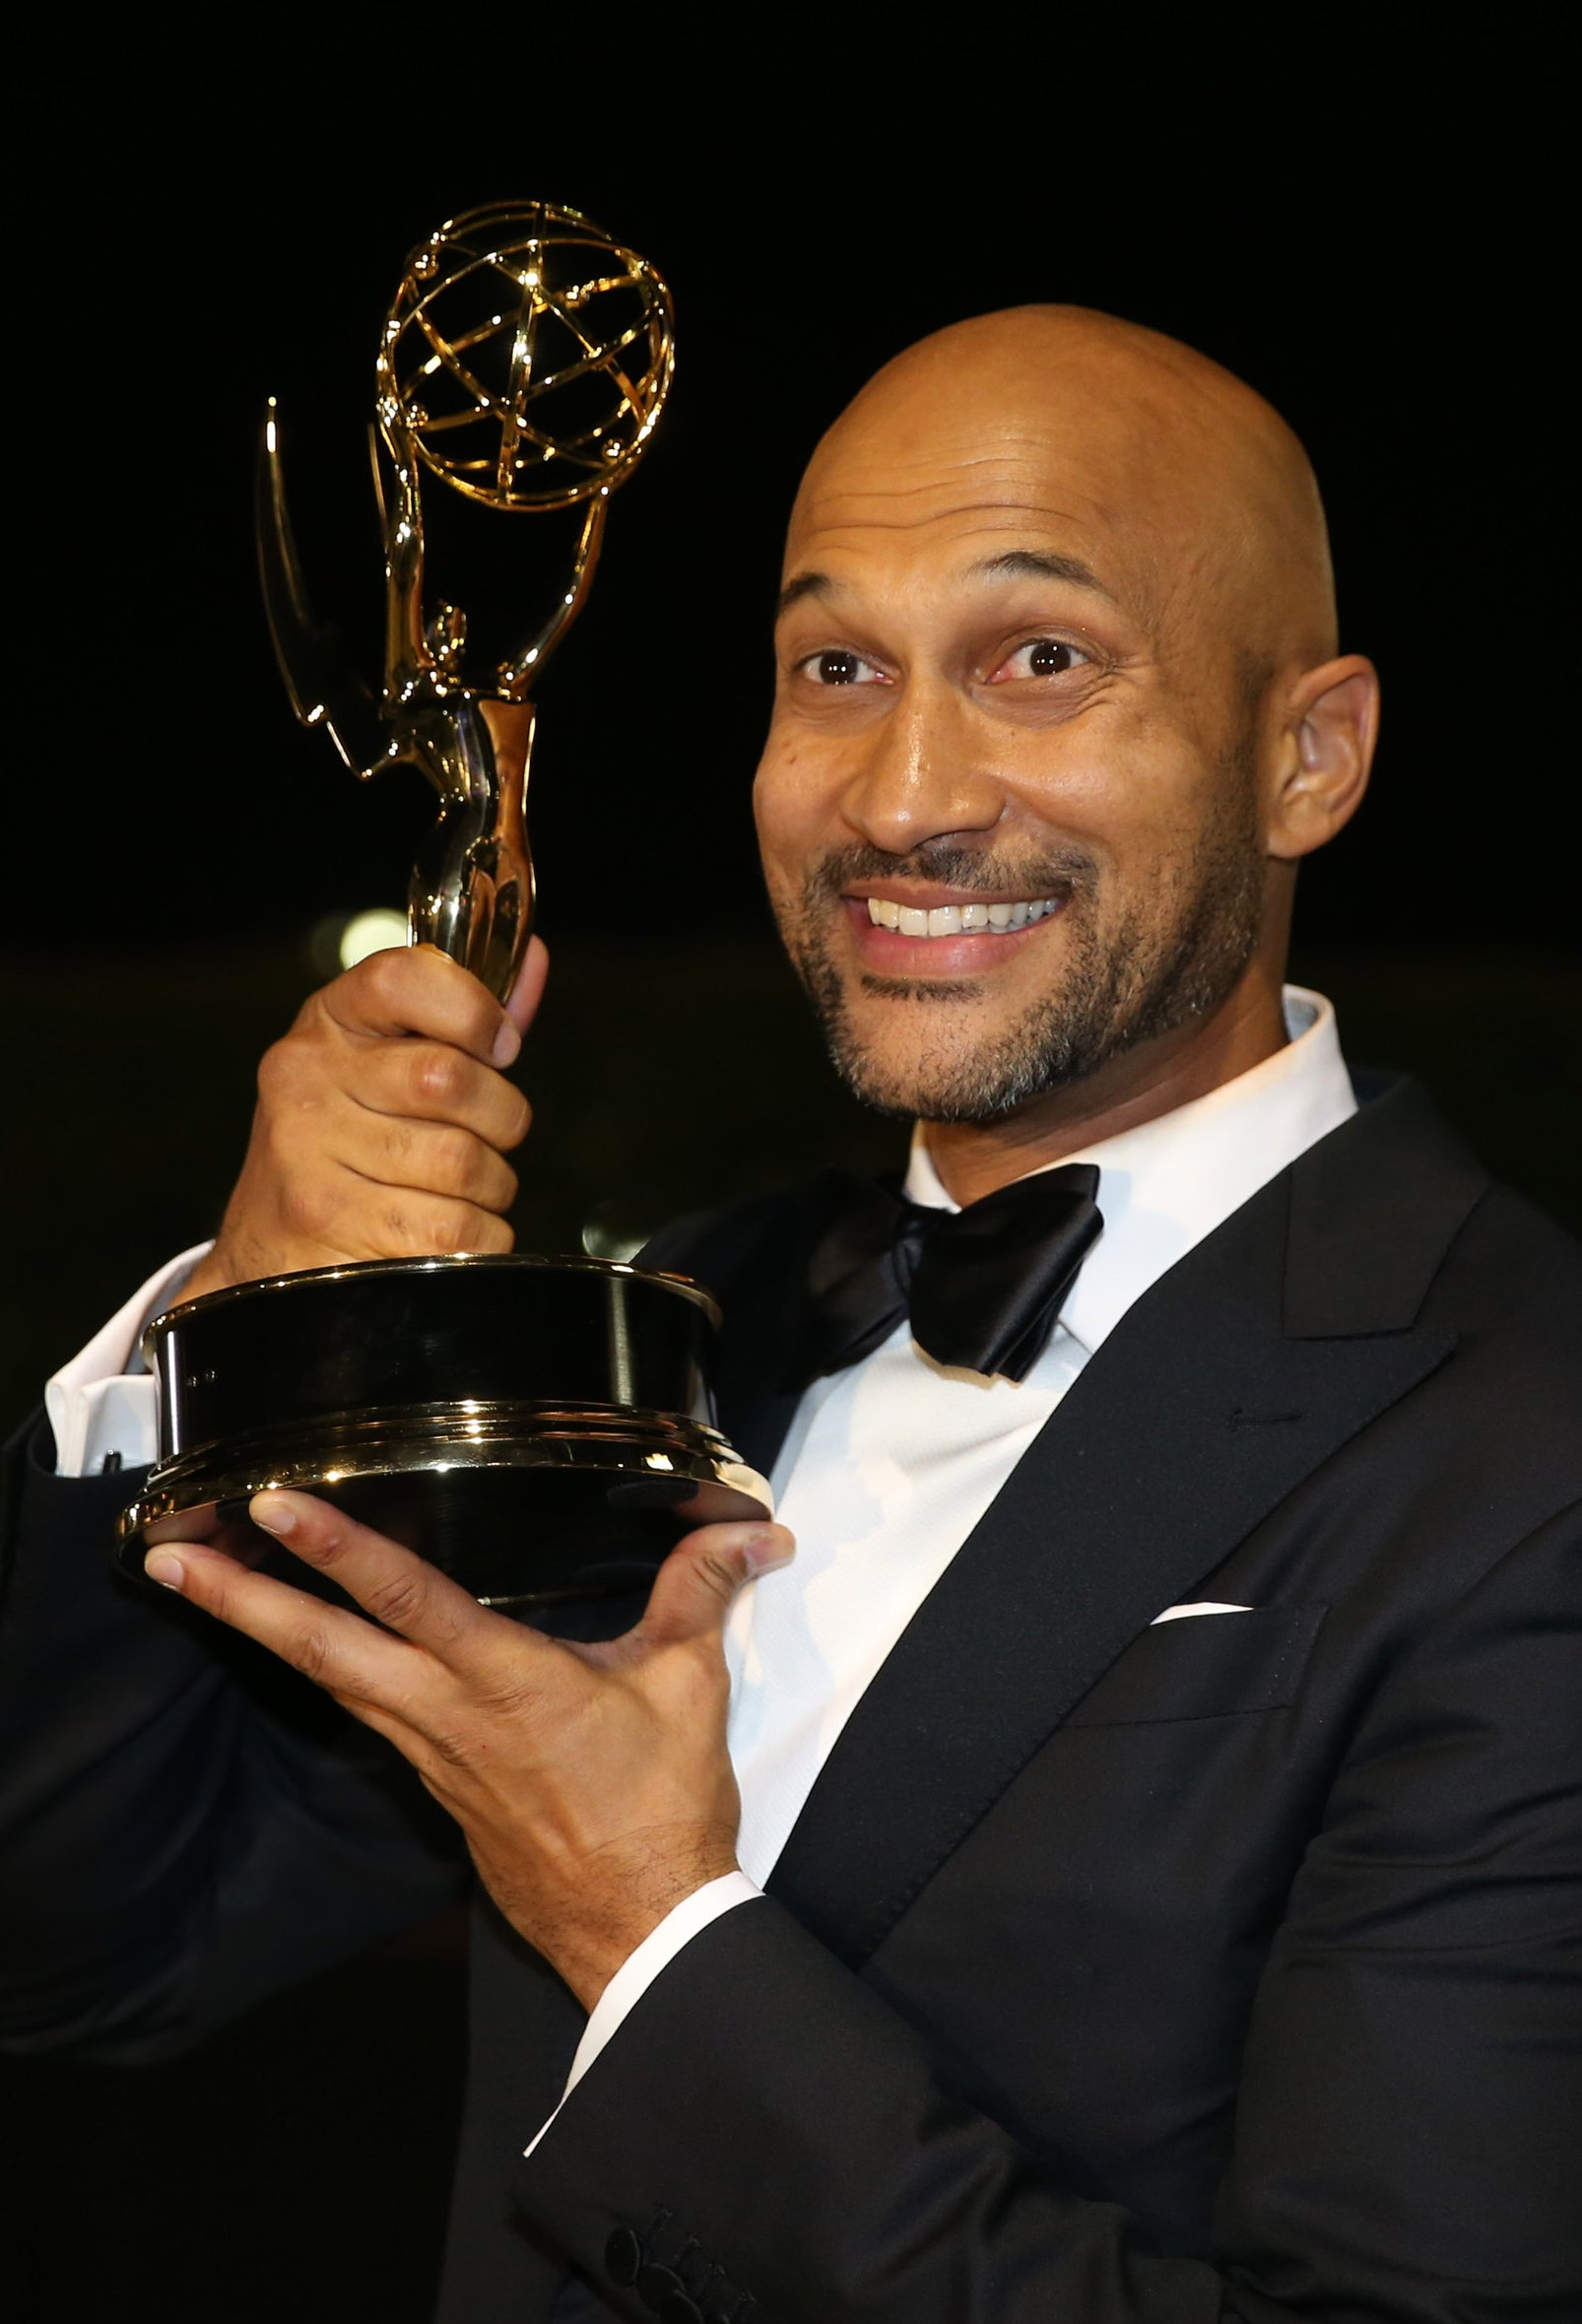 Keegan-Michael Key in a suit, smiling and holding his Emmy Award